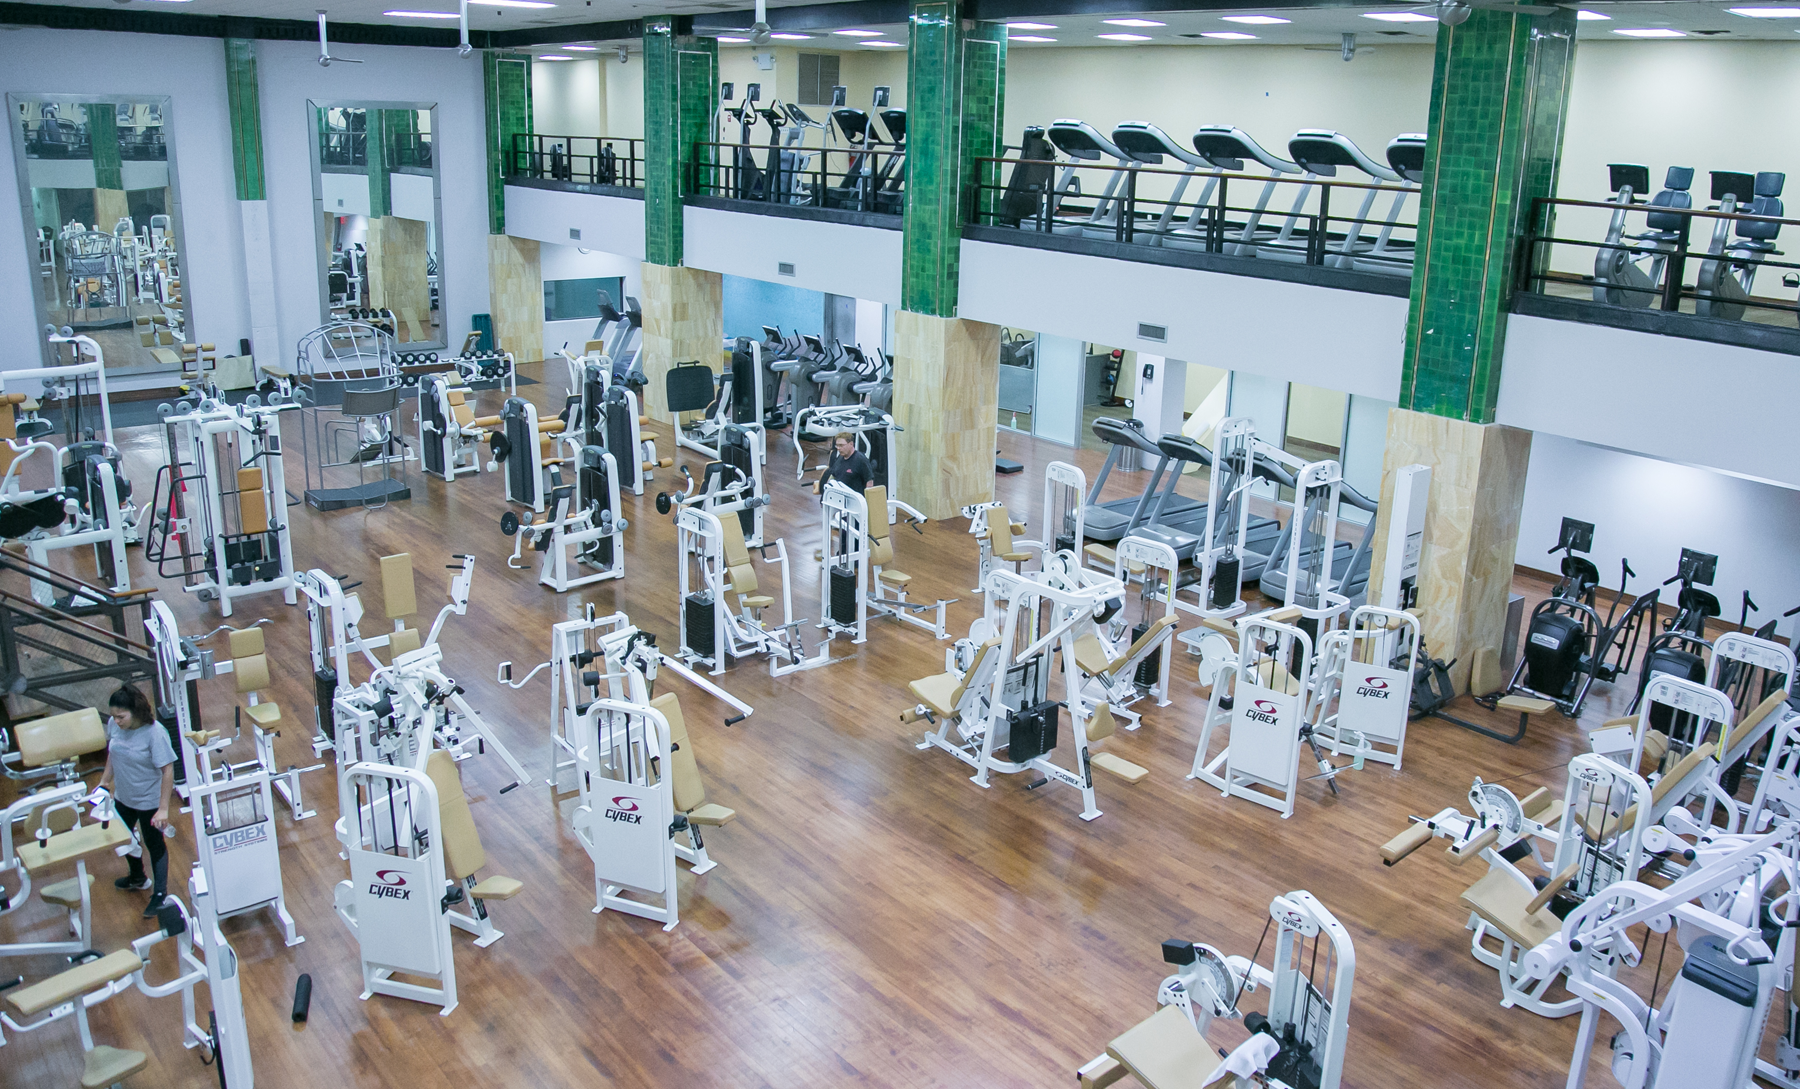 One of the gym facilities